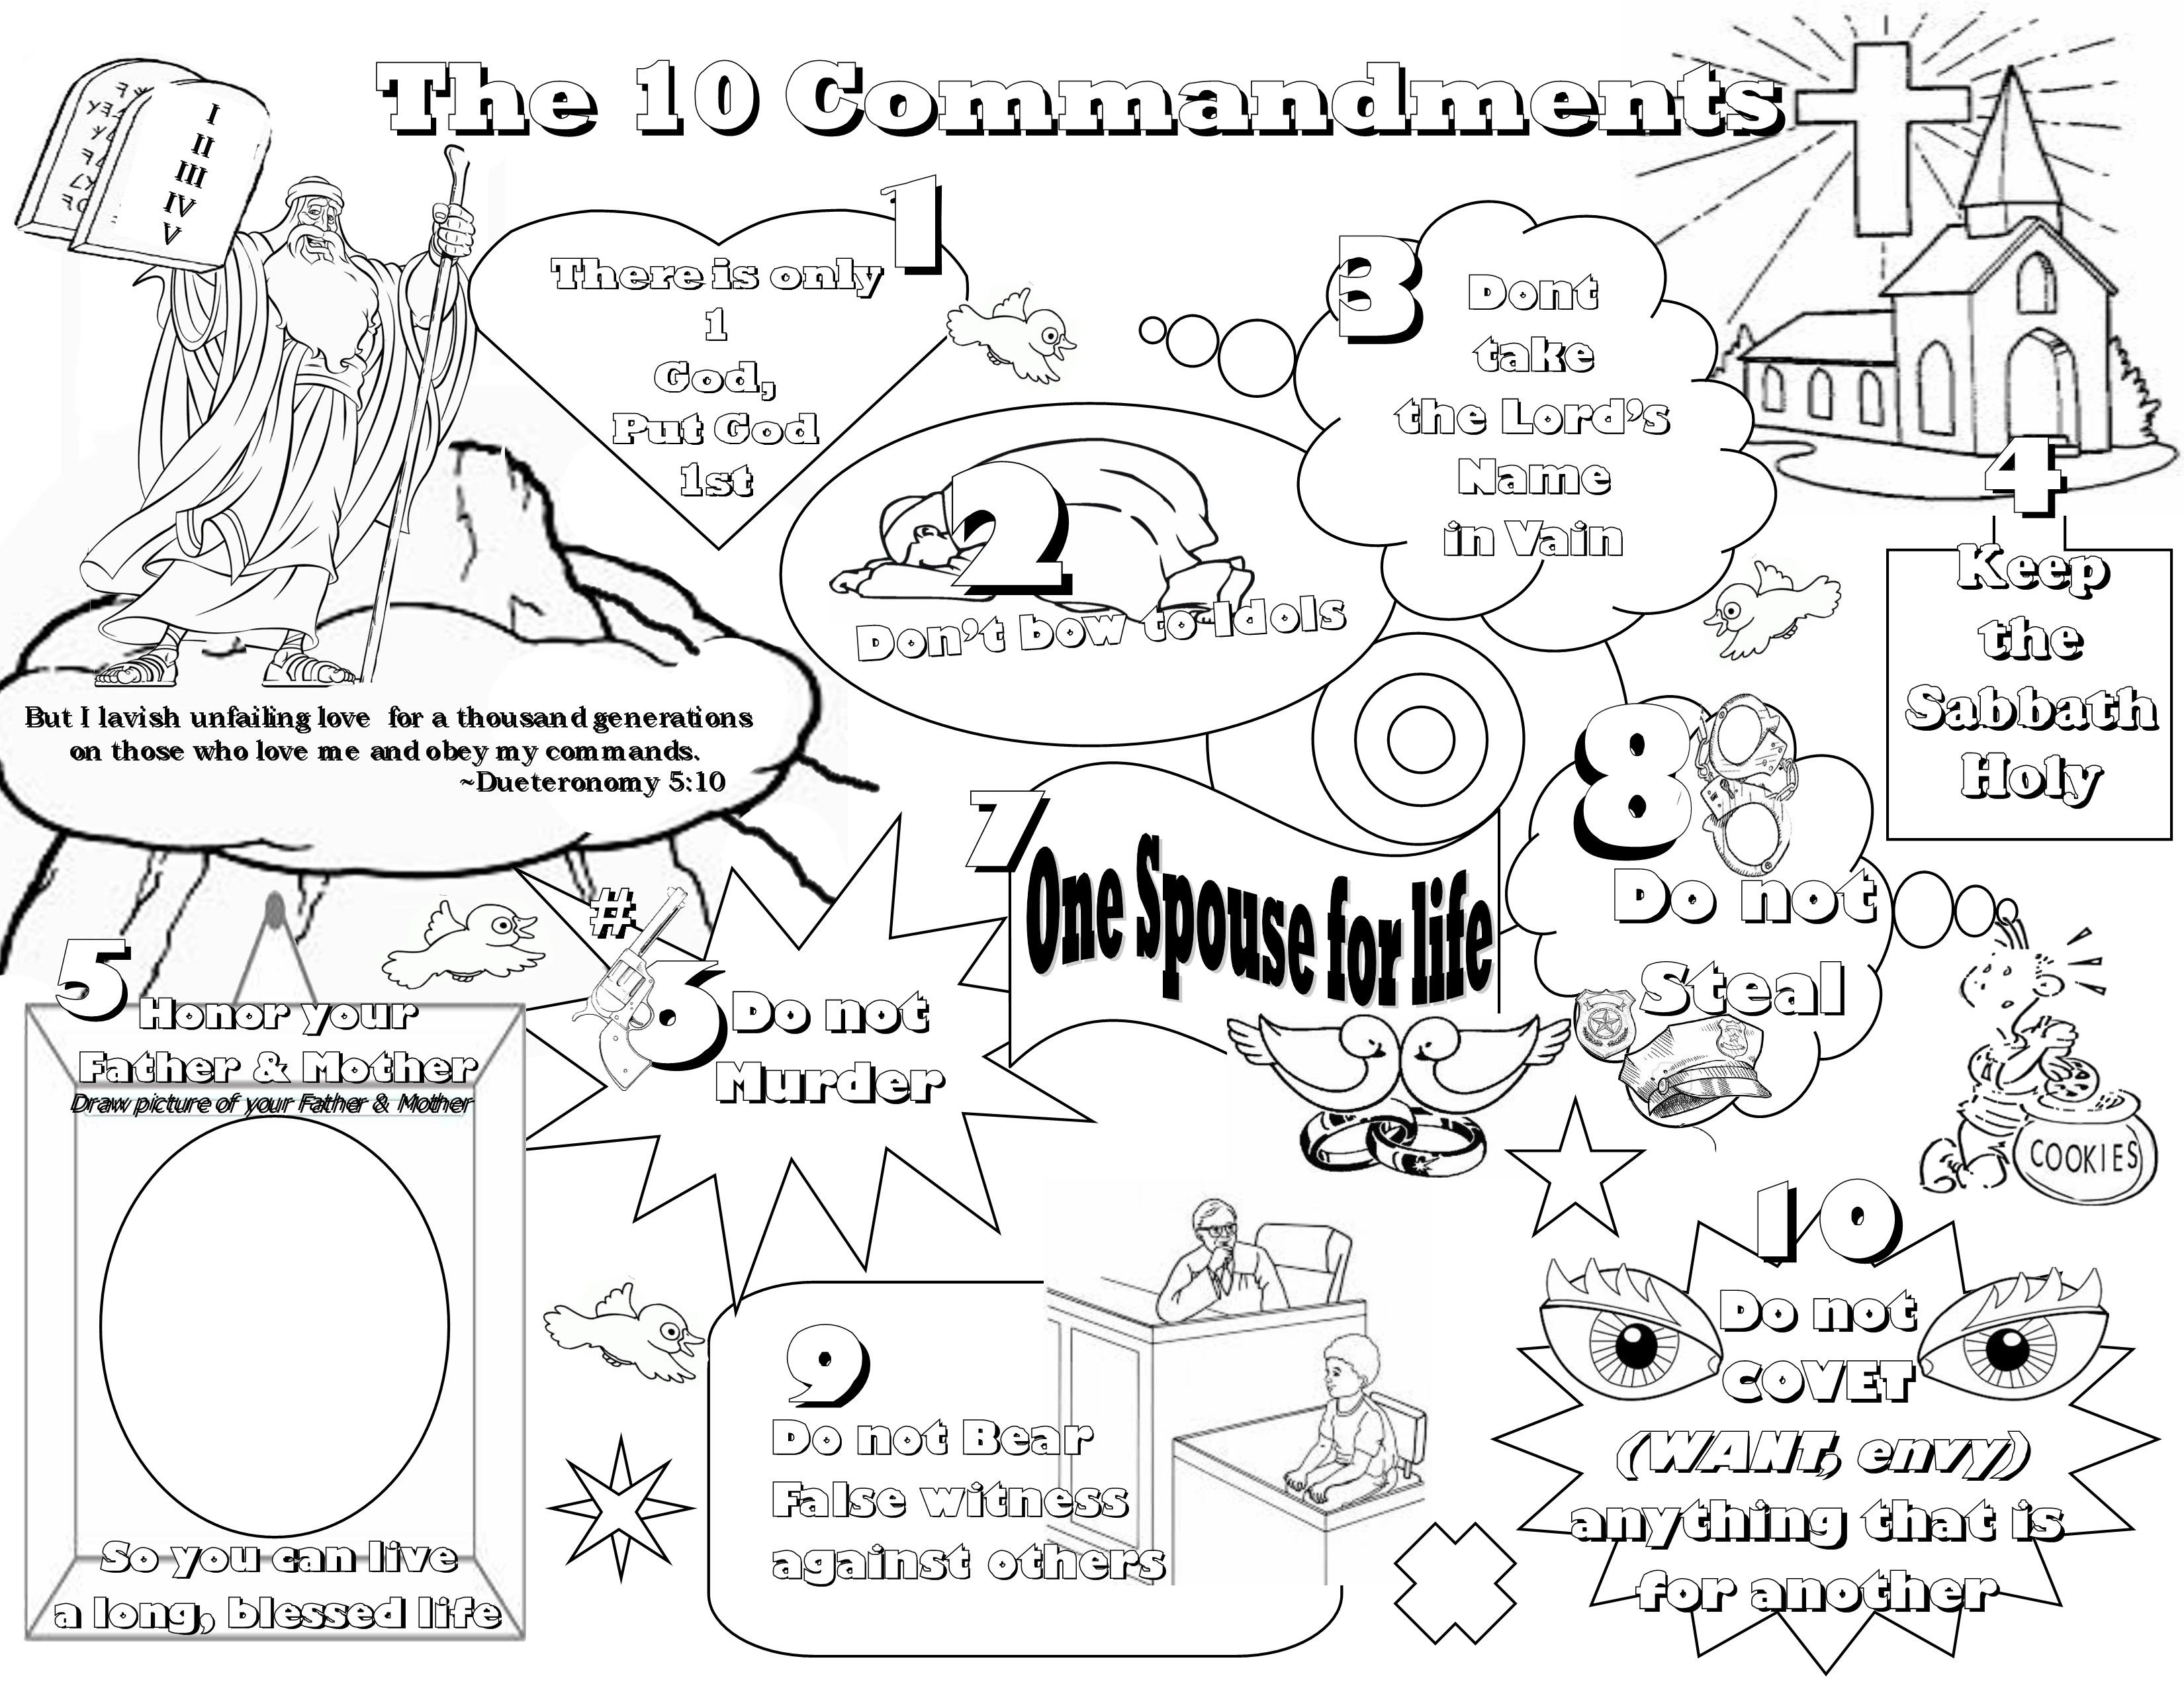 Exquisite Free Printable Ten Commandments Coloring Pages Do Not - Free Printable Ten Commandments Coloring Pages